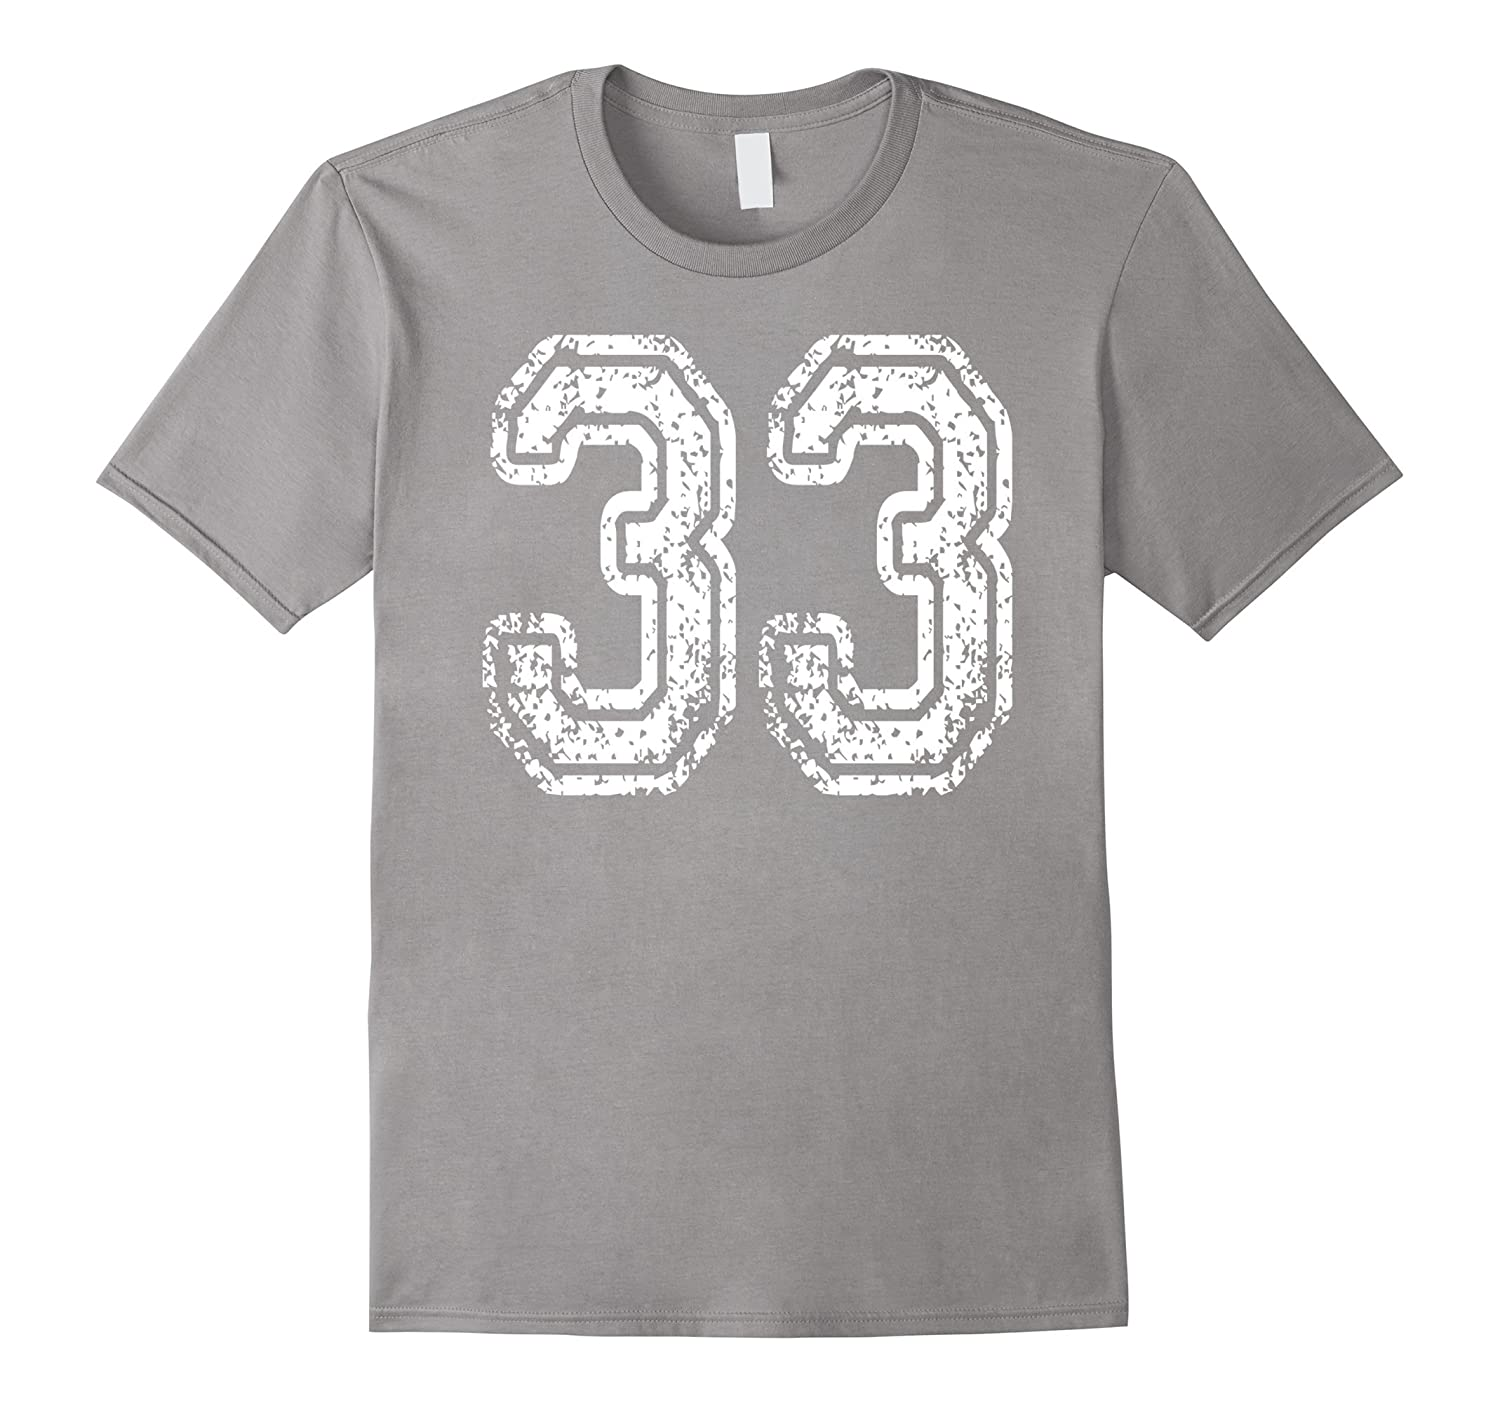 #33 Grungy Numbered Sports Team T-Shirts printed both sides-4LVS